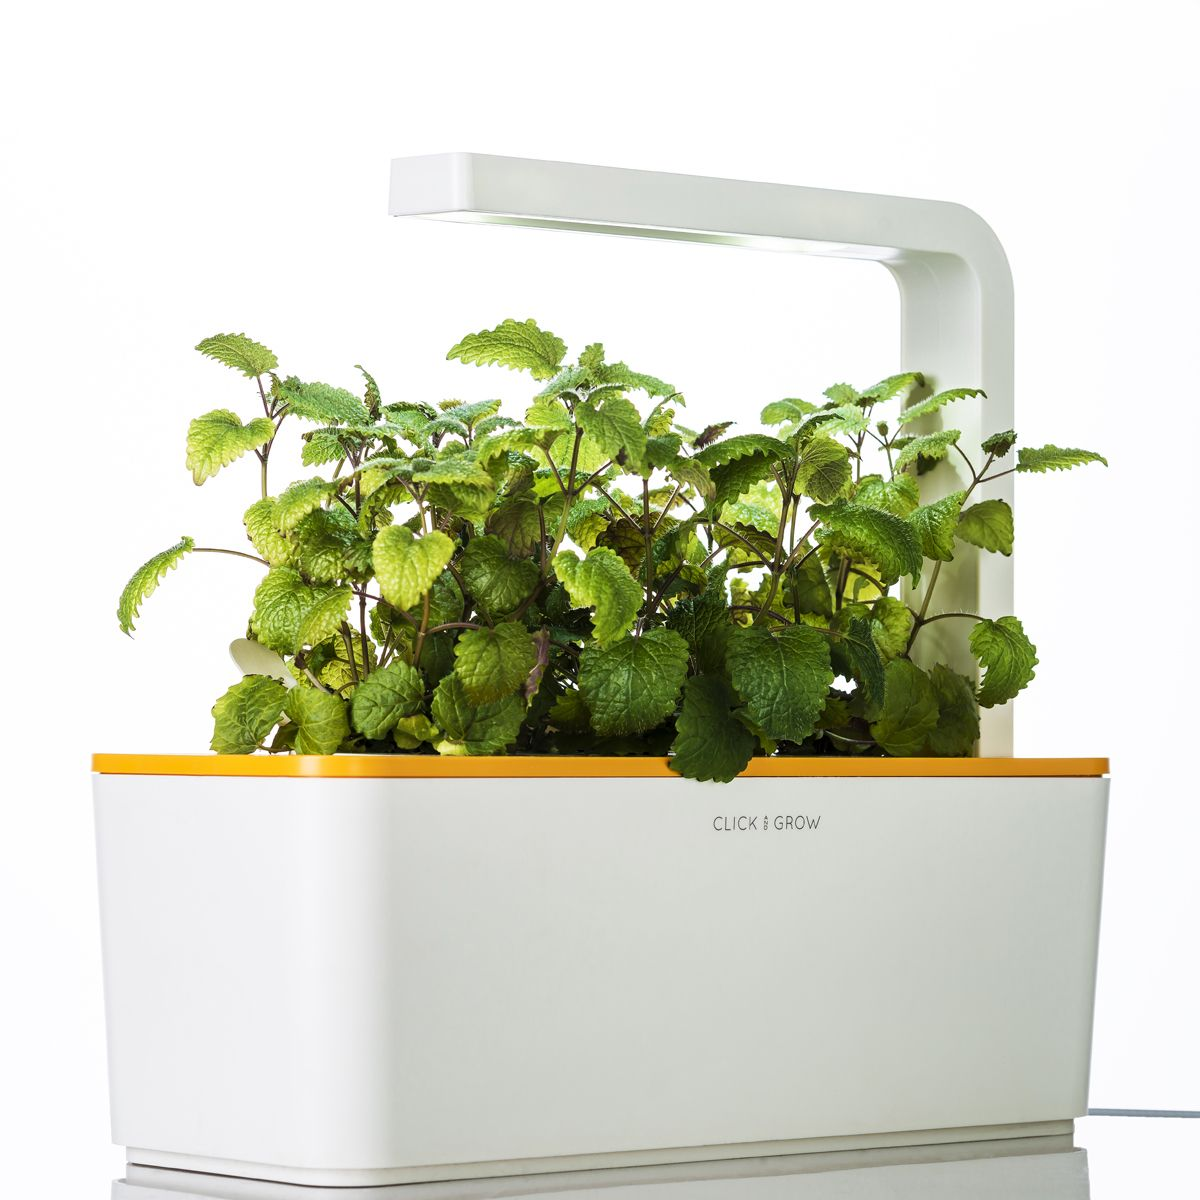 Click Grow Officially Launches Smart Herb Garden We Are 400 x 300